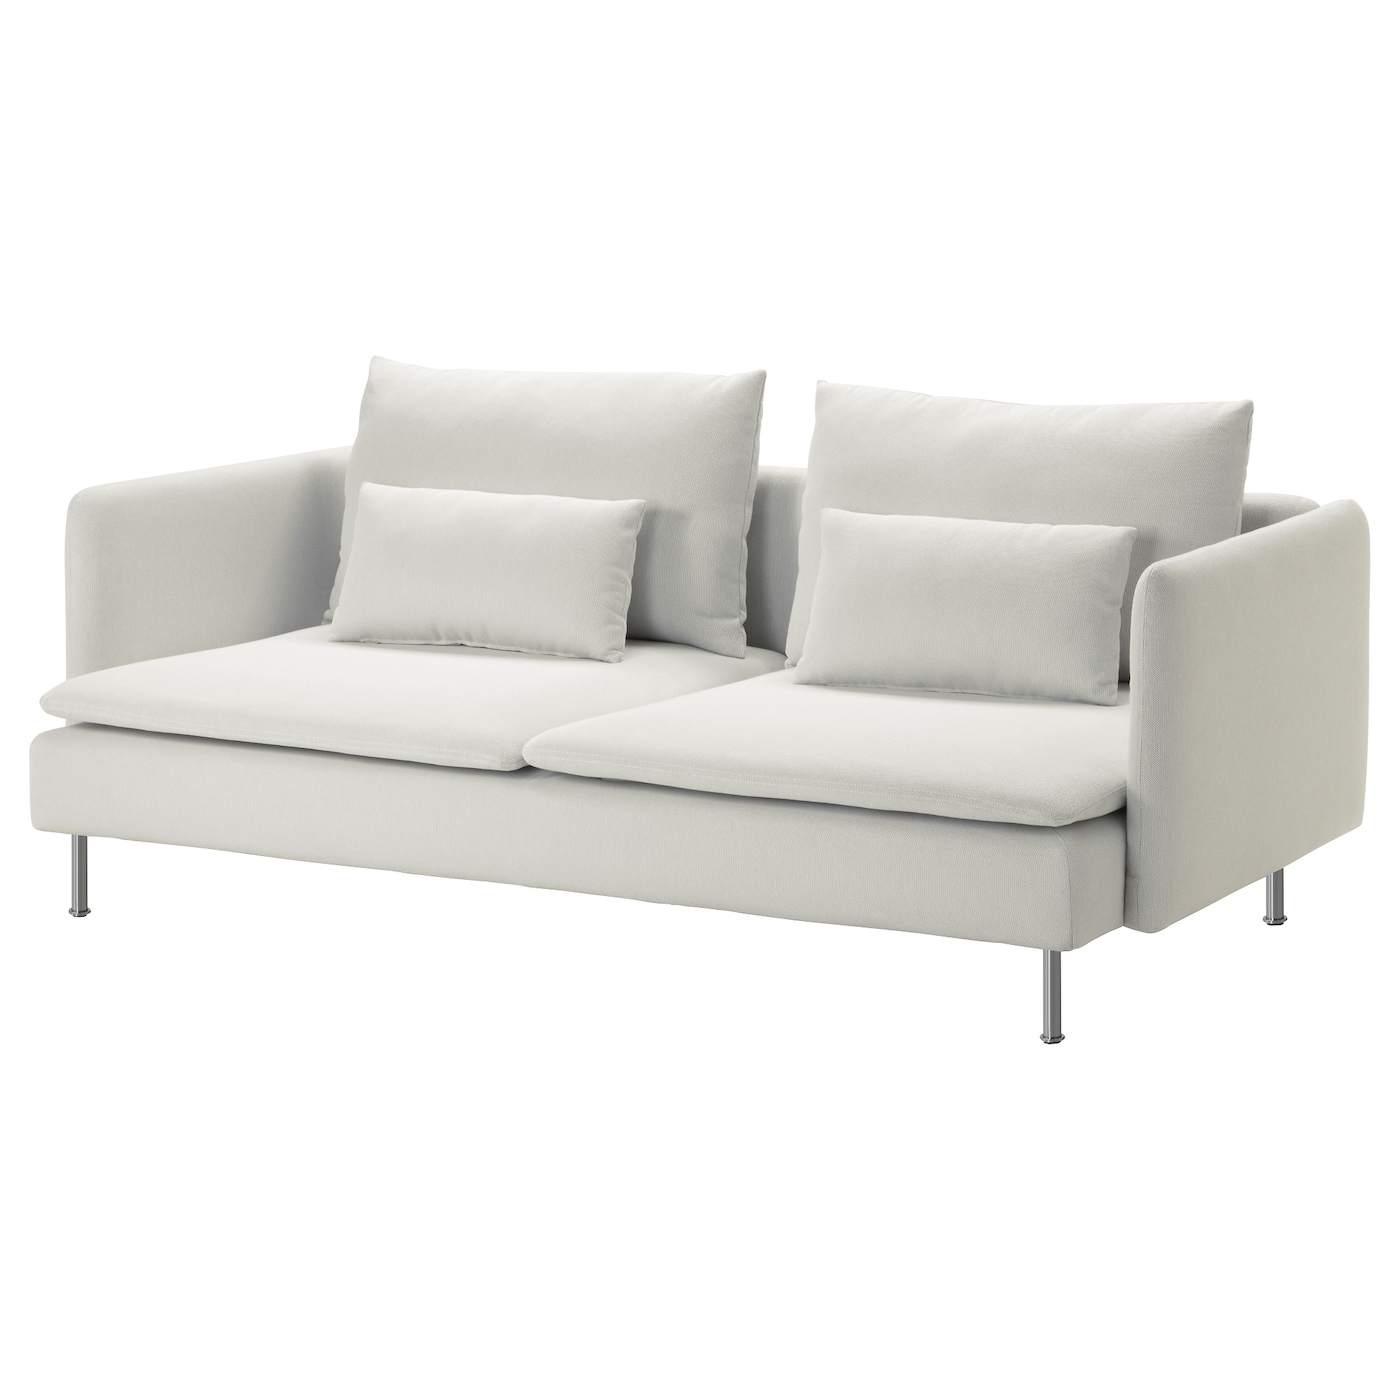 IKEA SÖDERHAMN 3-seat sofa 10 year guarantee. Read about the terms in the guarantee brochure.